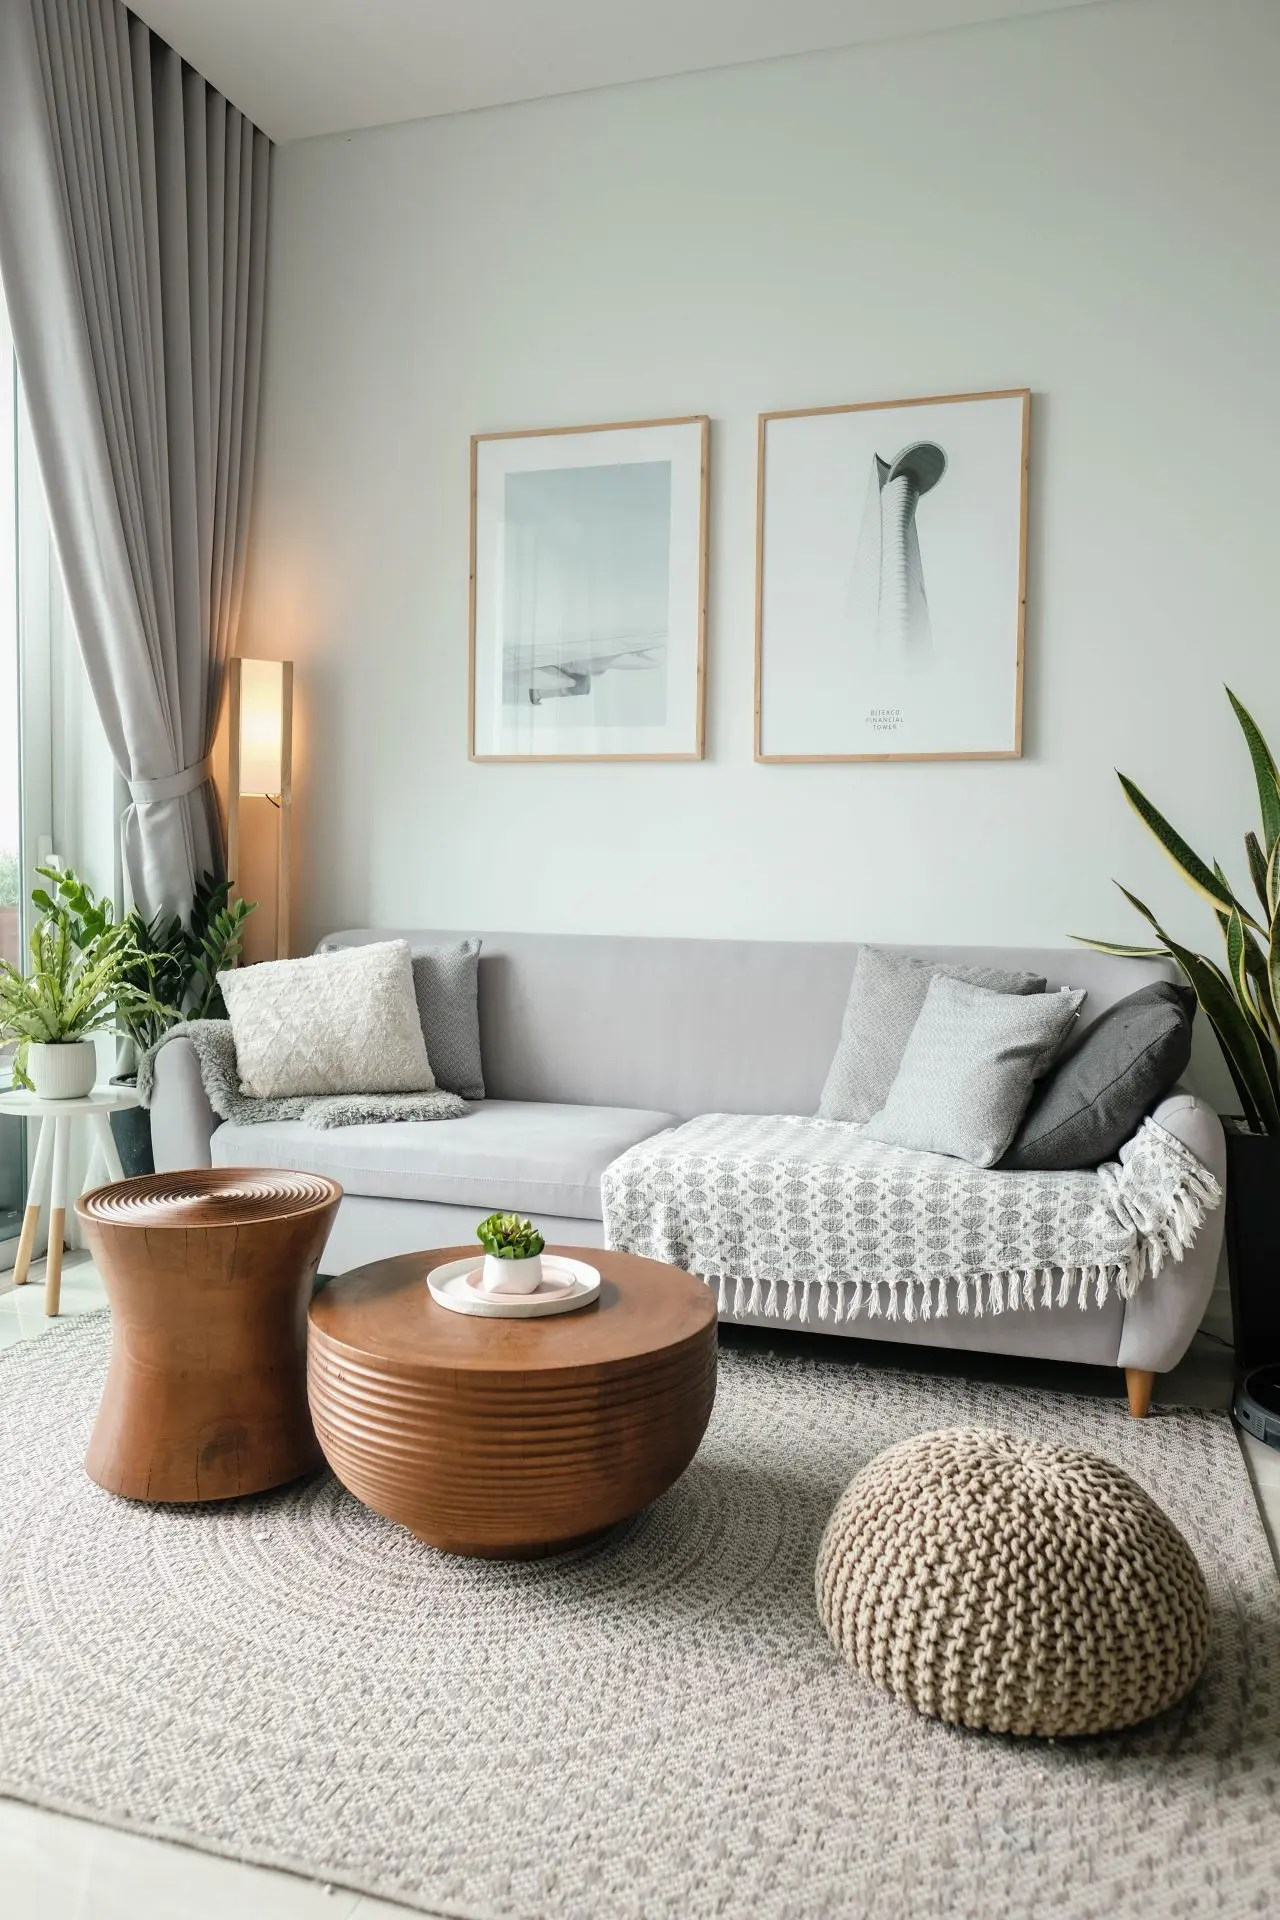 Cozy living room with couch and two small round table